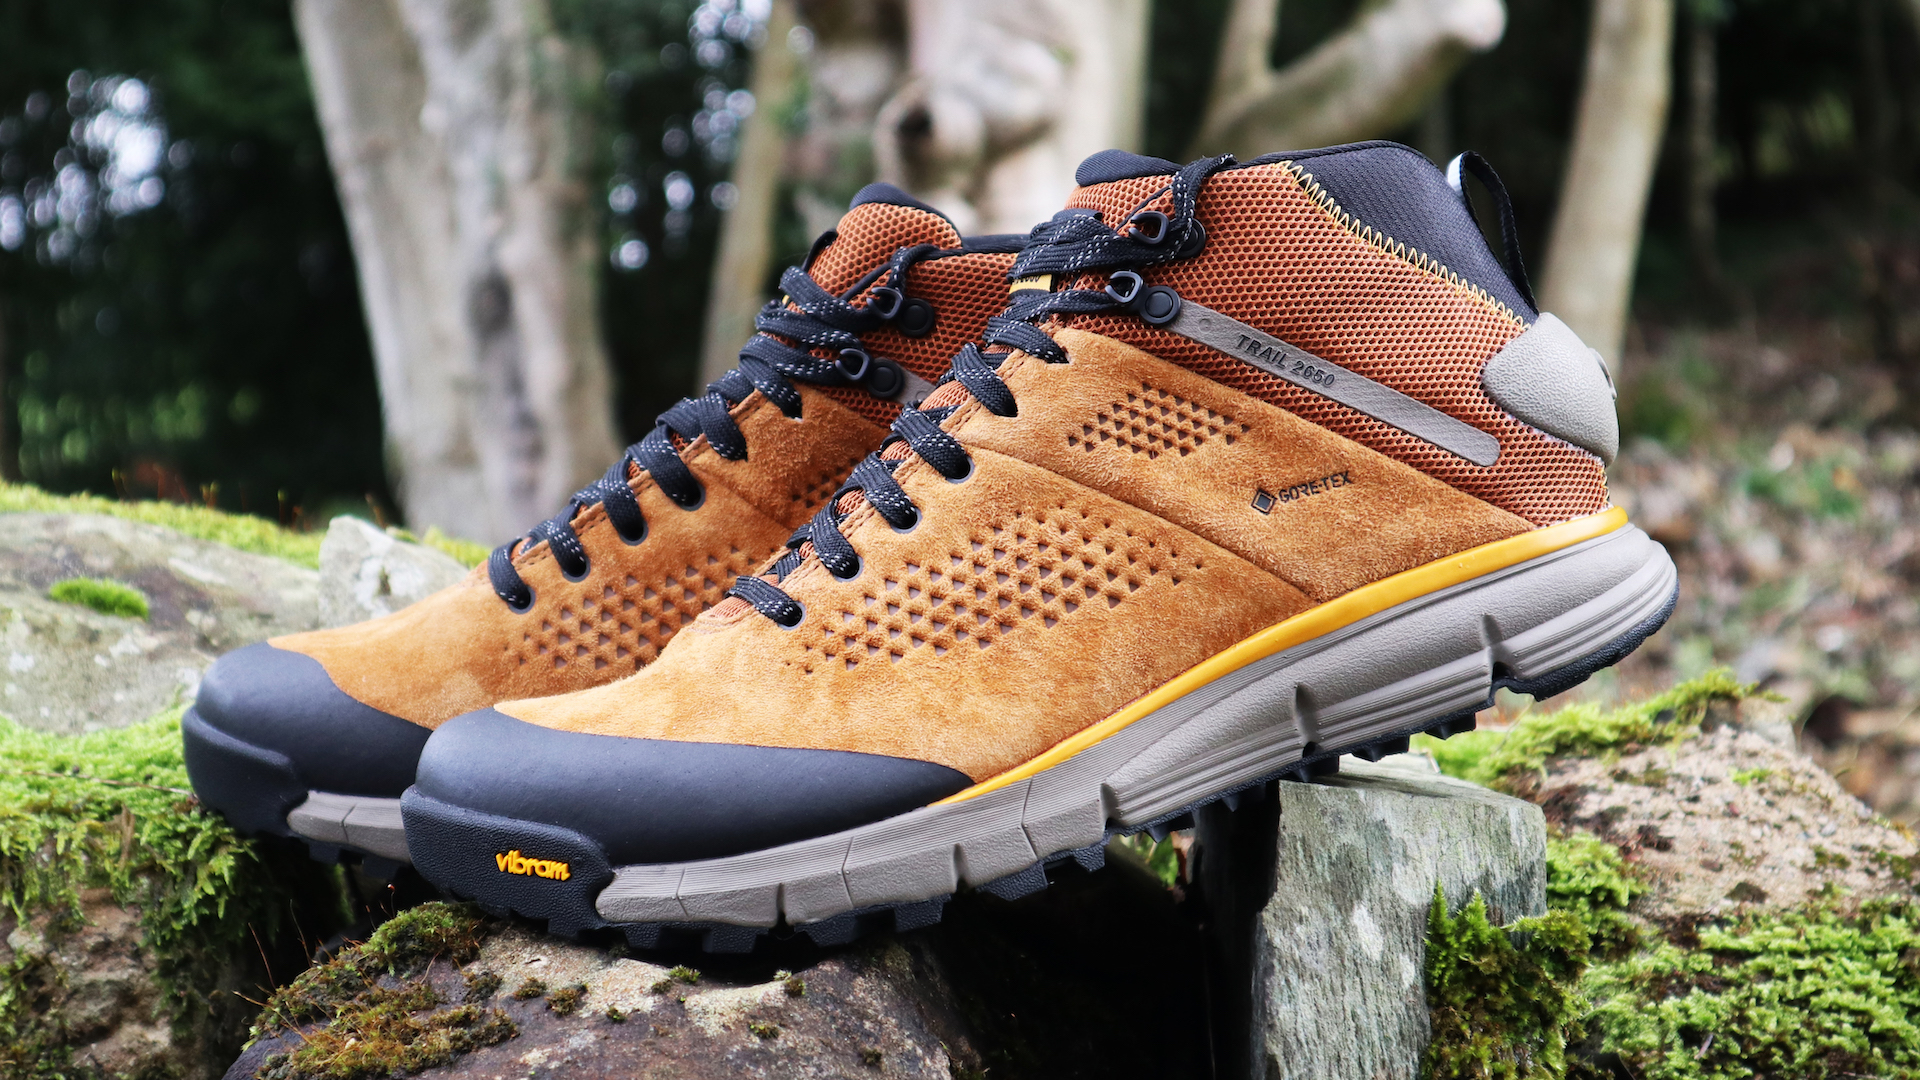 Danner Trail 2650 Mid Walking Boots